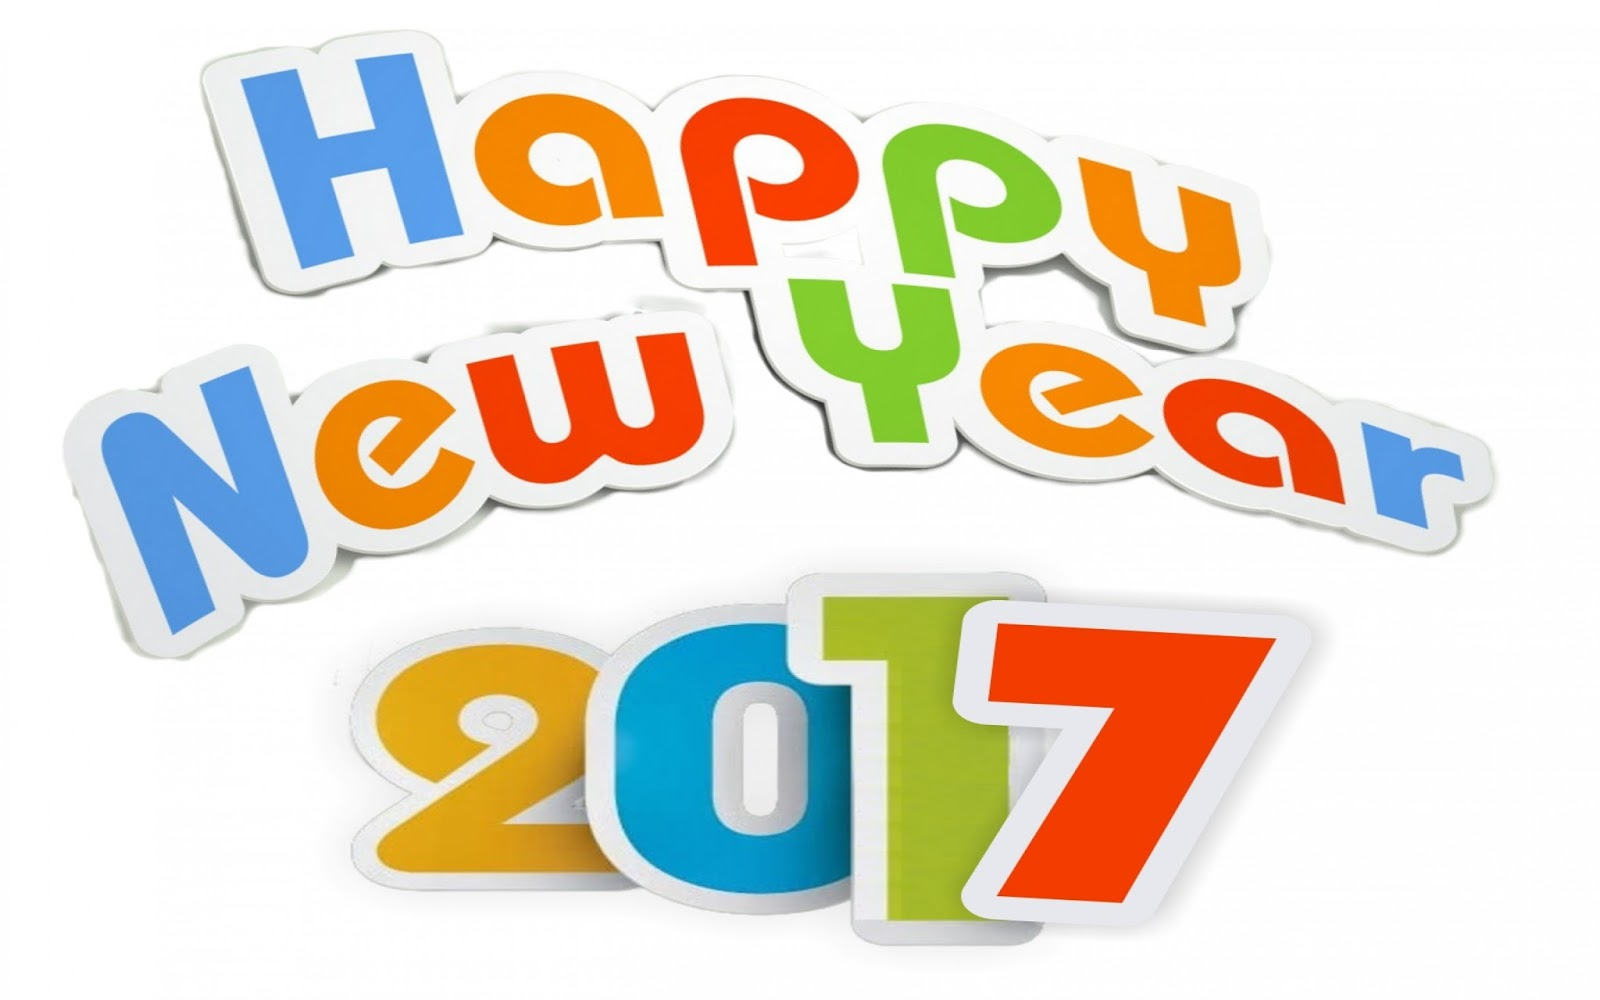 Happy New Year 2017 text messages